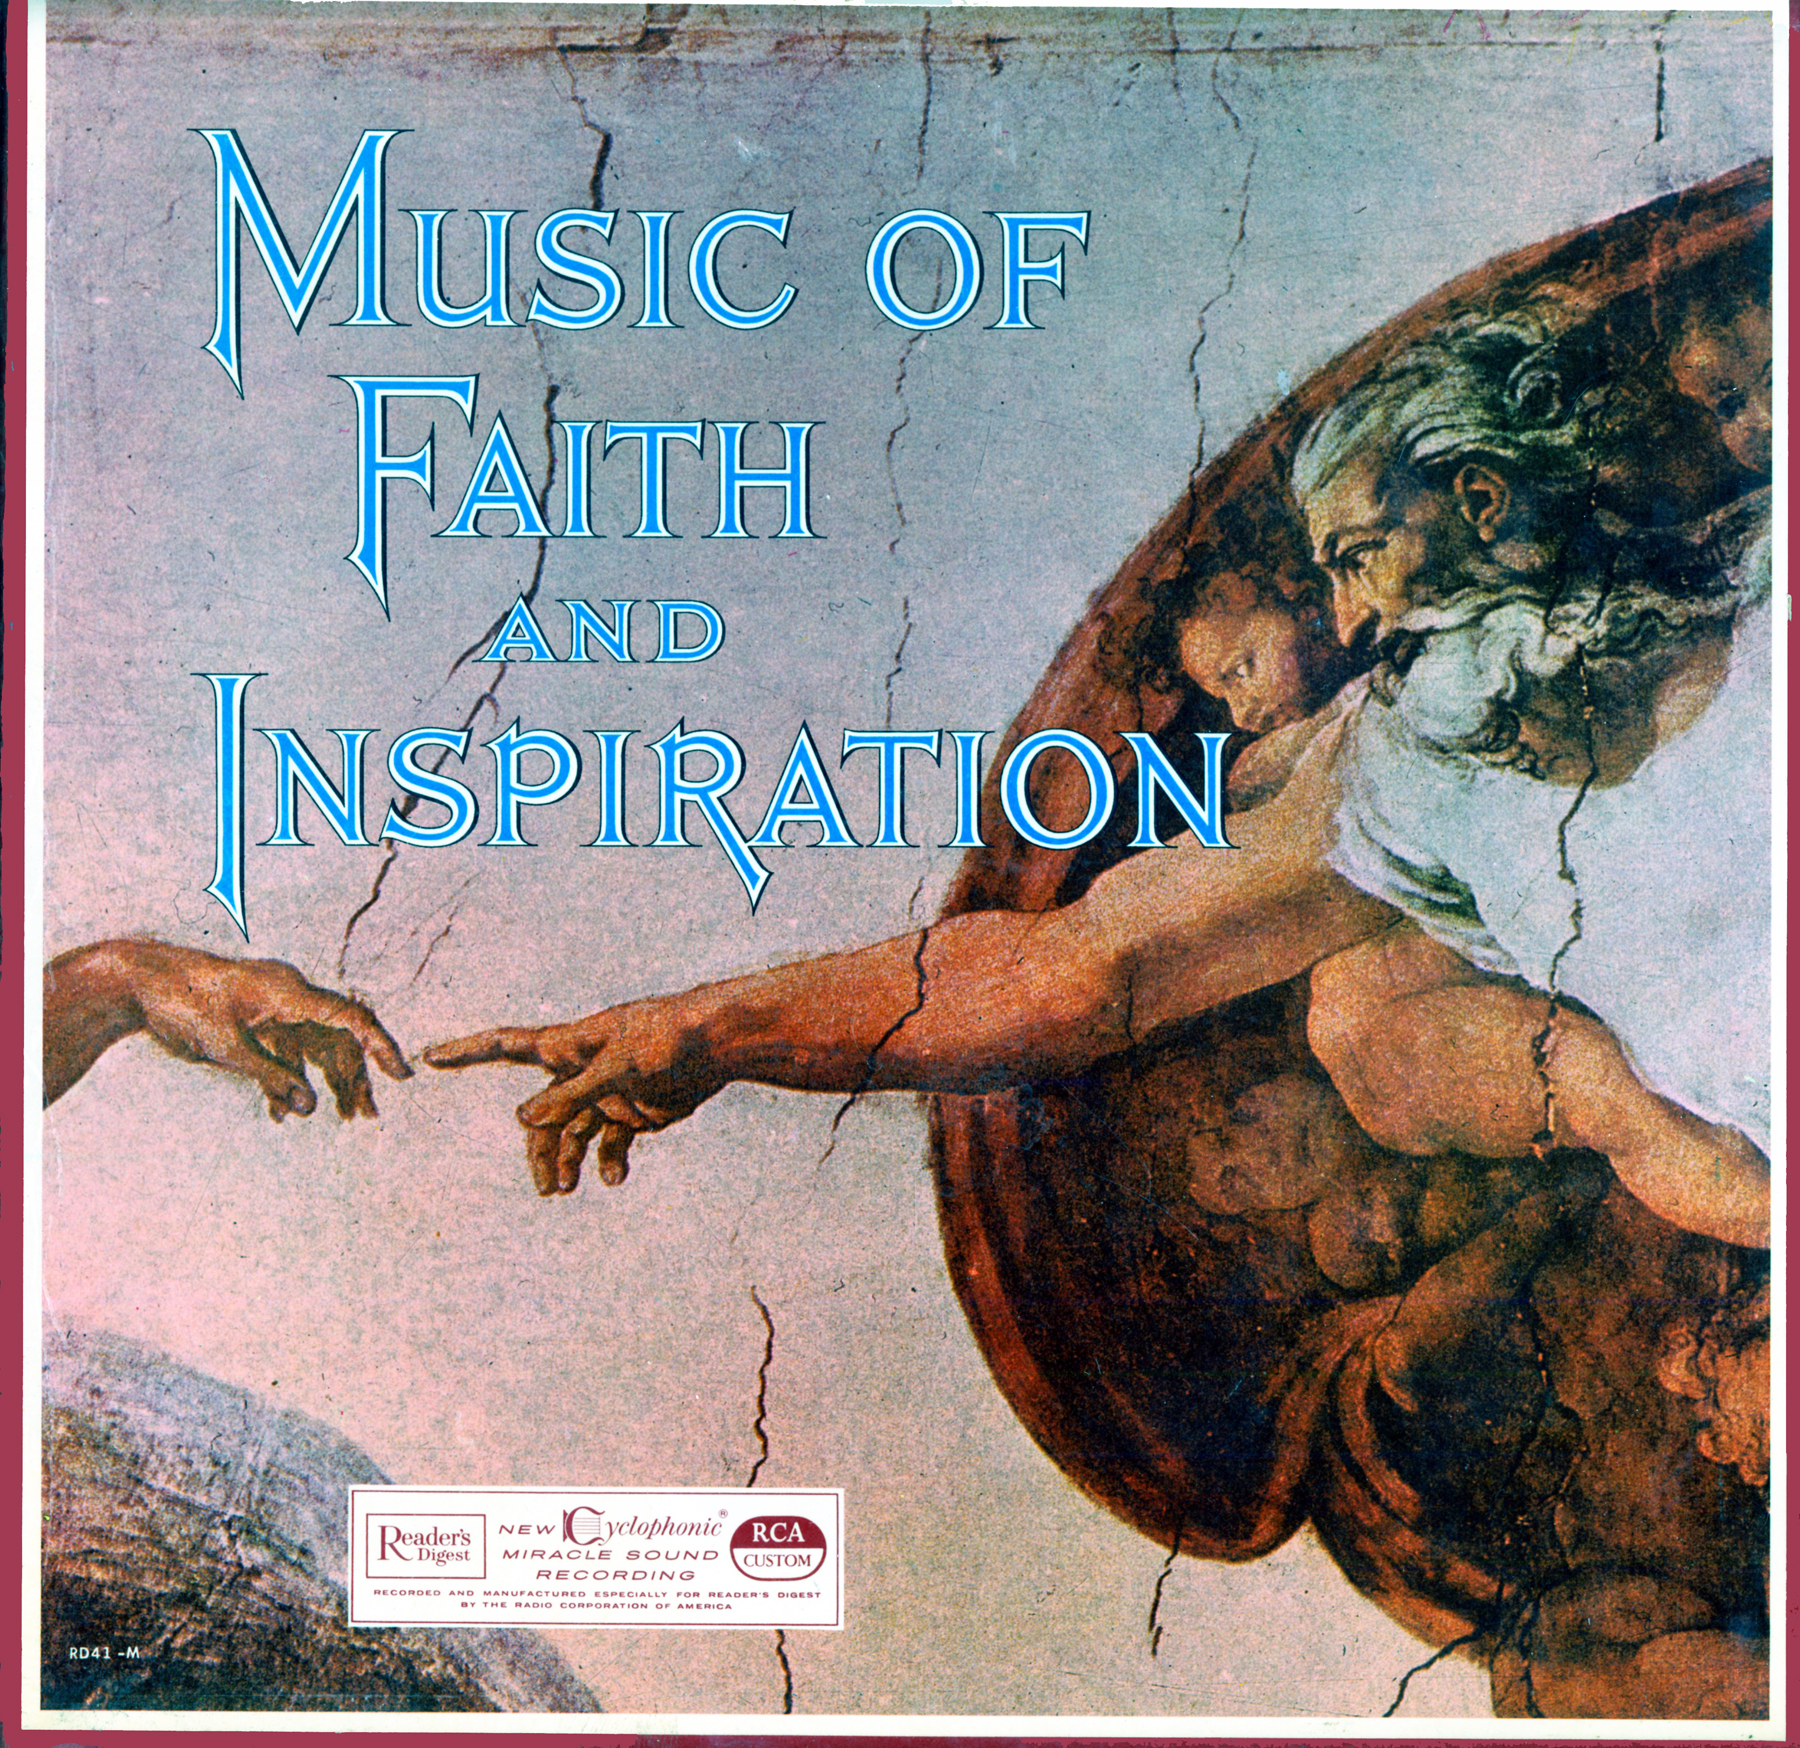 RD41 - Music Of Faith And Inspiration on CD